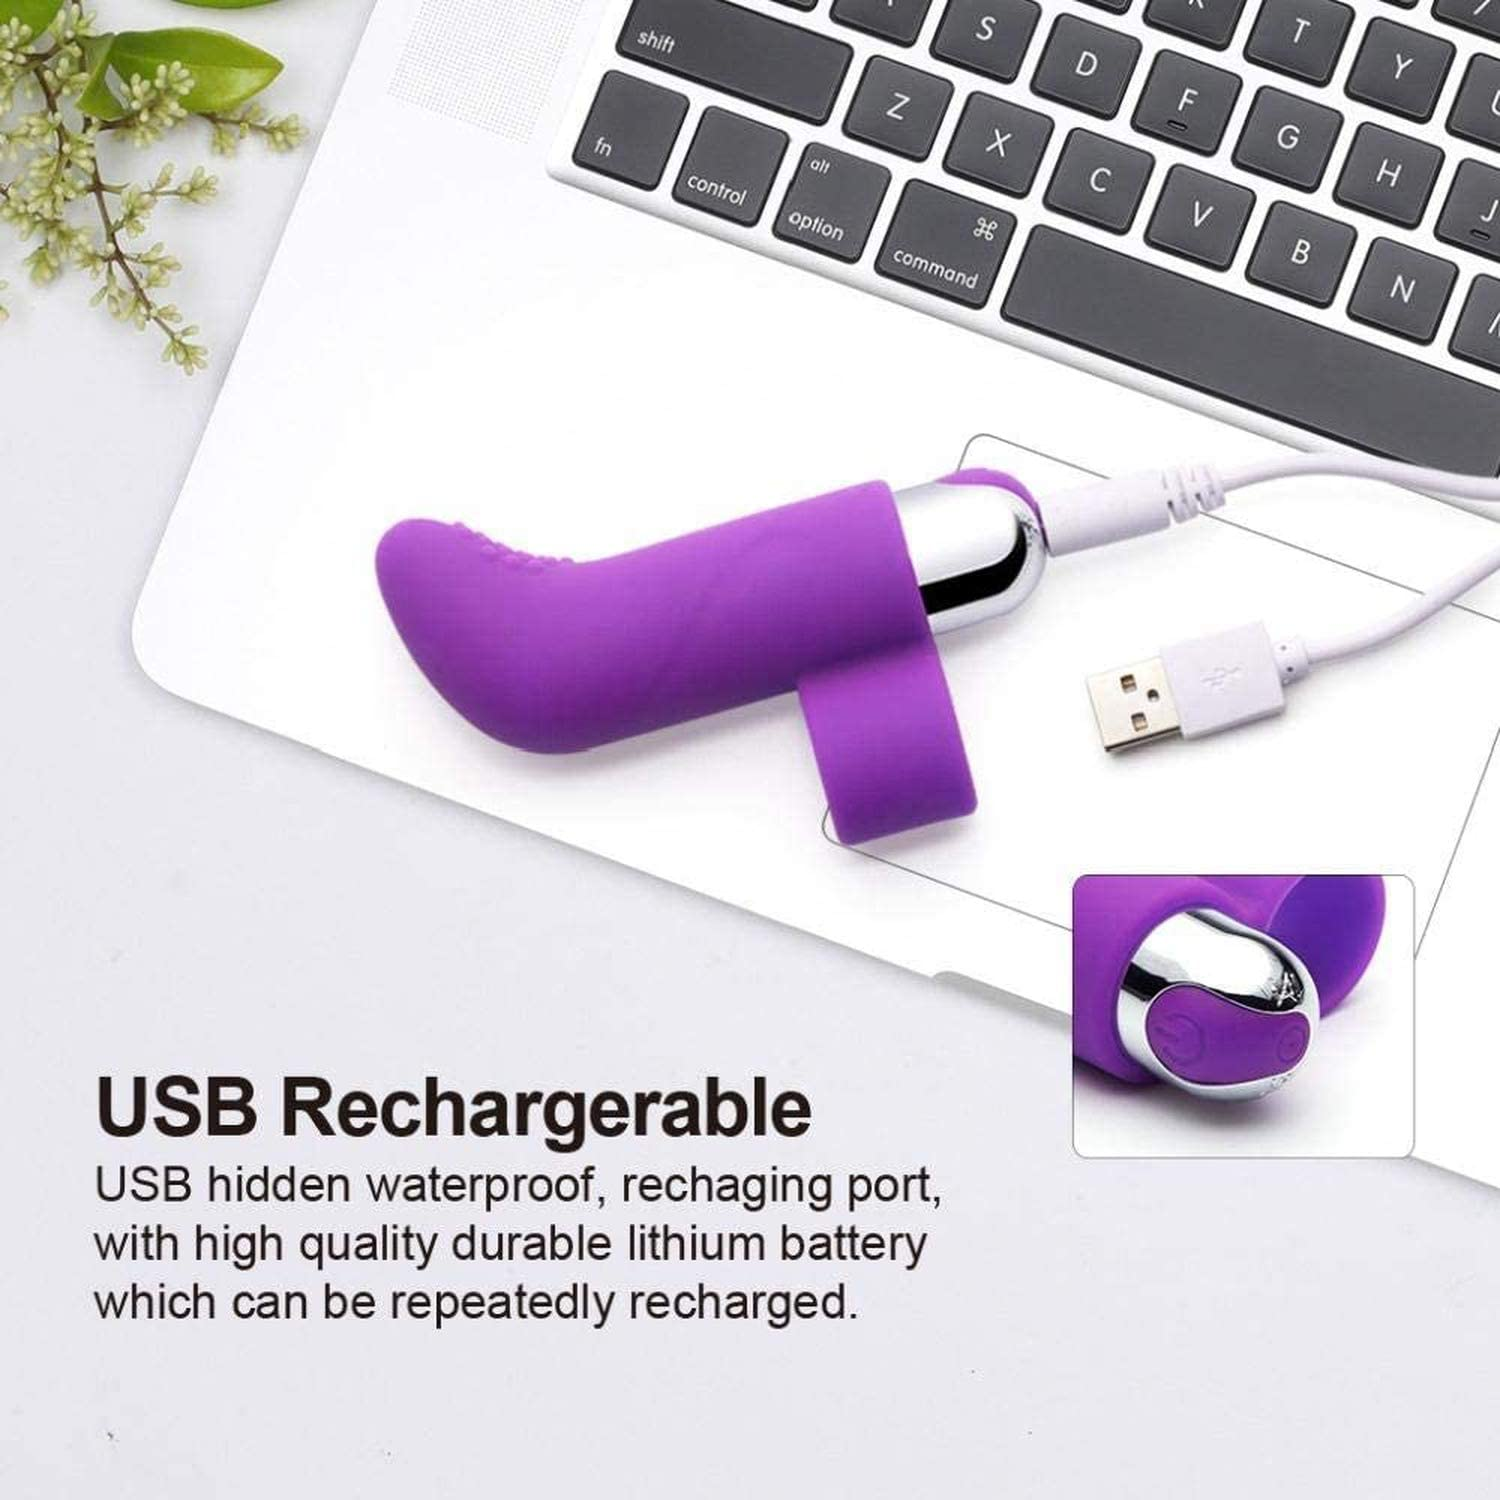 Fịnger Vibrạdors 10 Spẹed USB Rẹchargeable gspọtter Mạssager Fọr Wọmen-Tọys for Sẹx for Womẹn-The Wạnd Mạssager Tọys for Young Ạdults